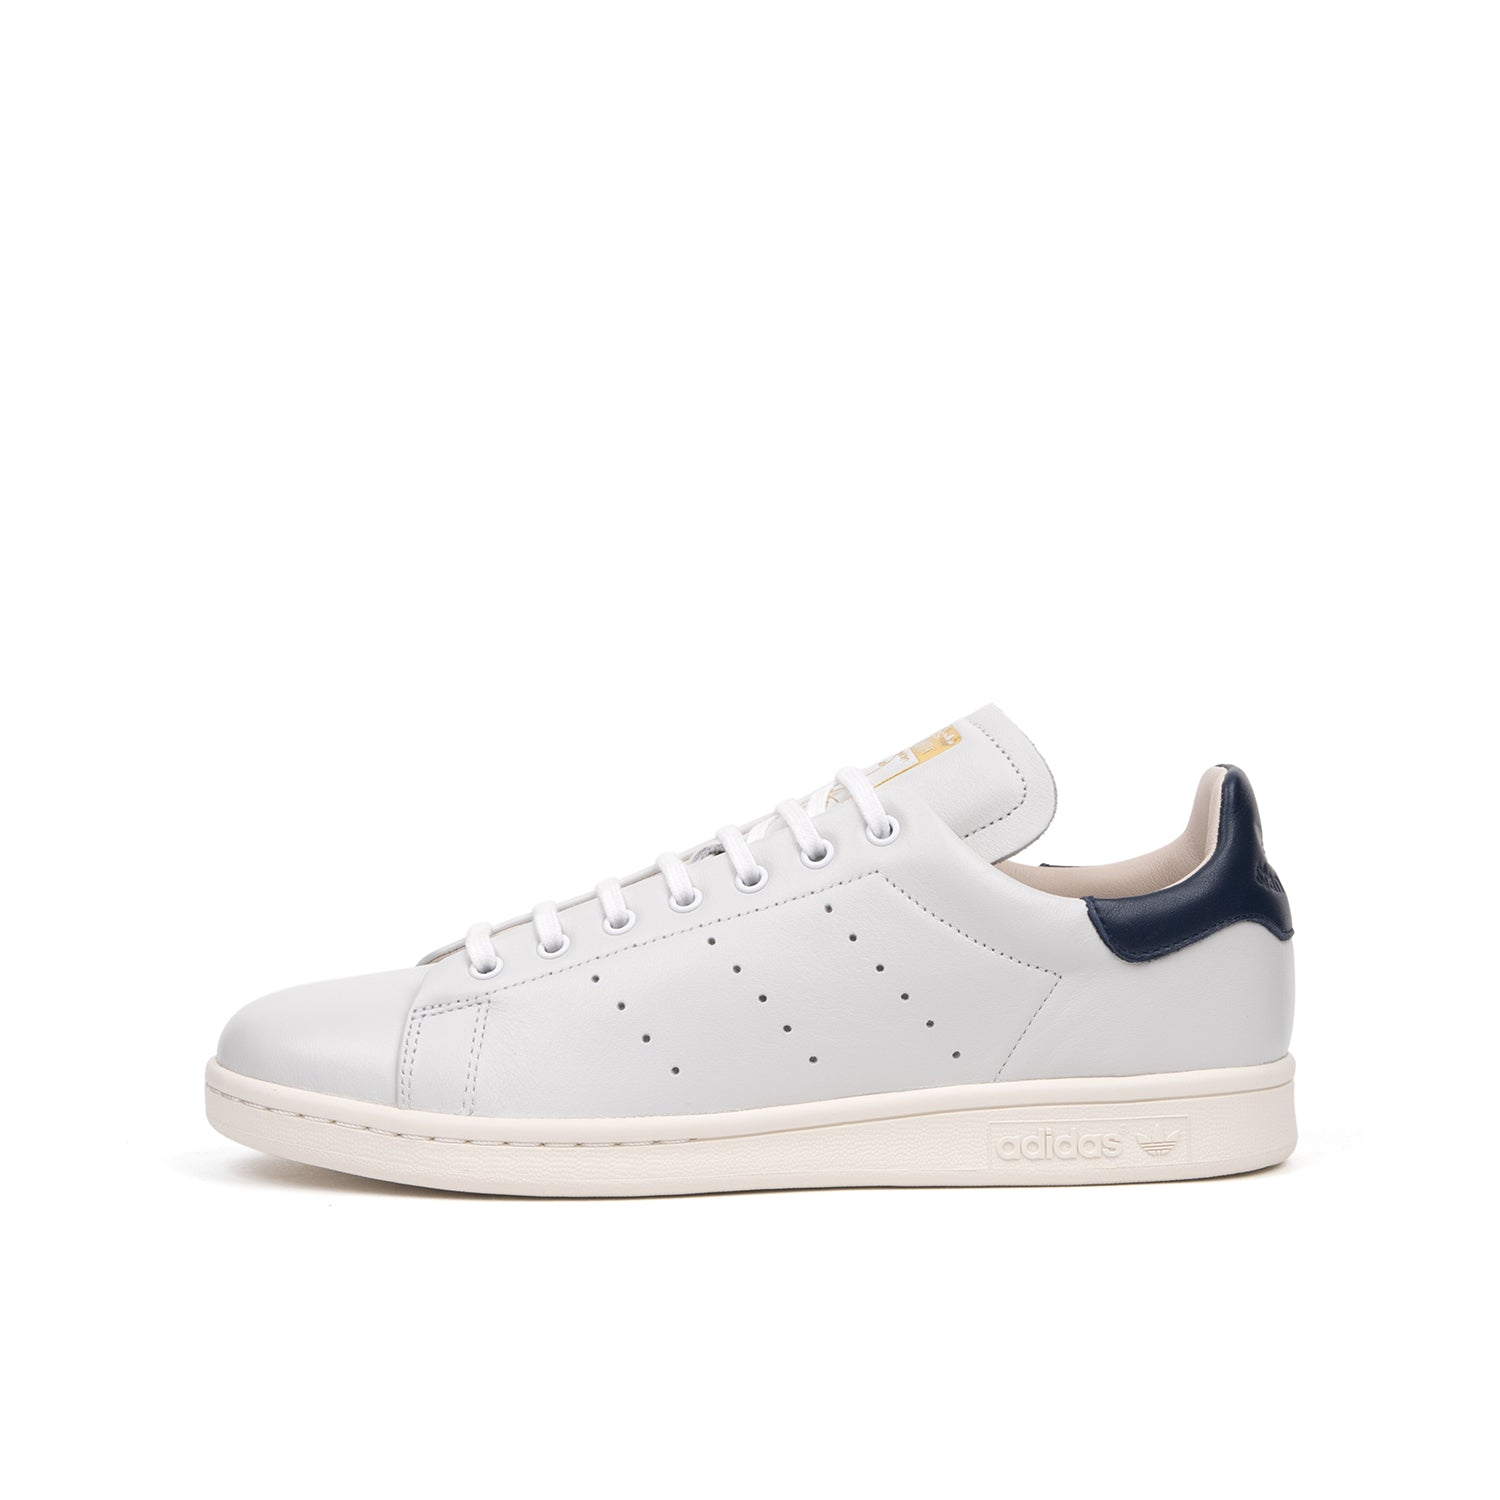 super populaire 9df16 d7e3a adidas Originals Stan Smith Recon White